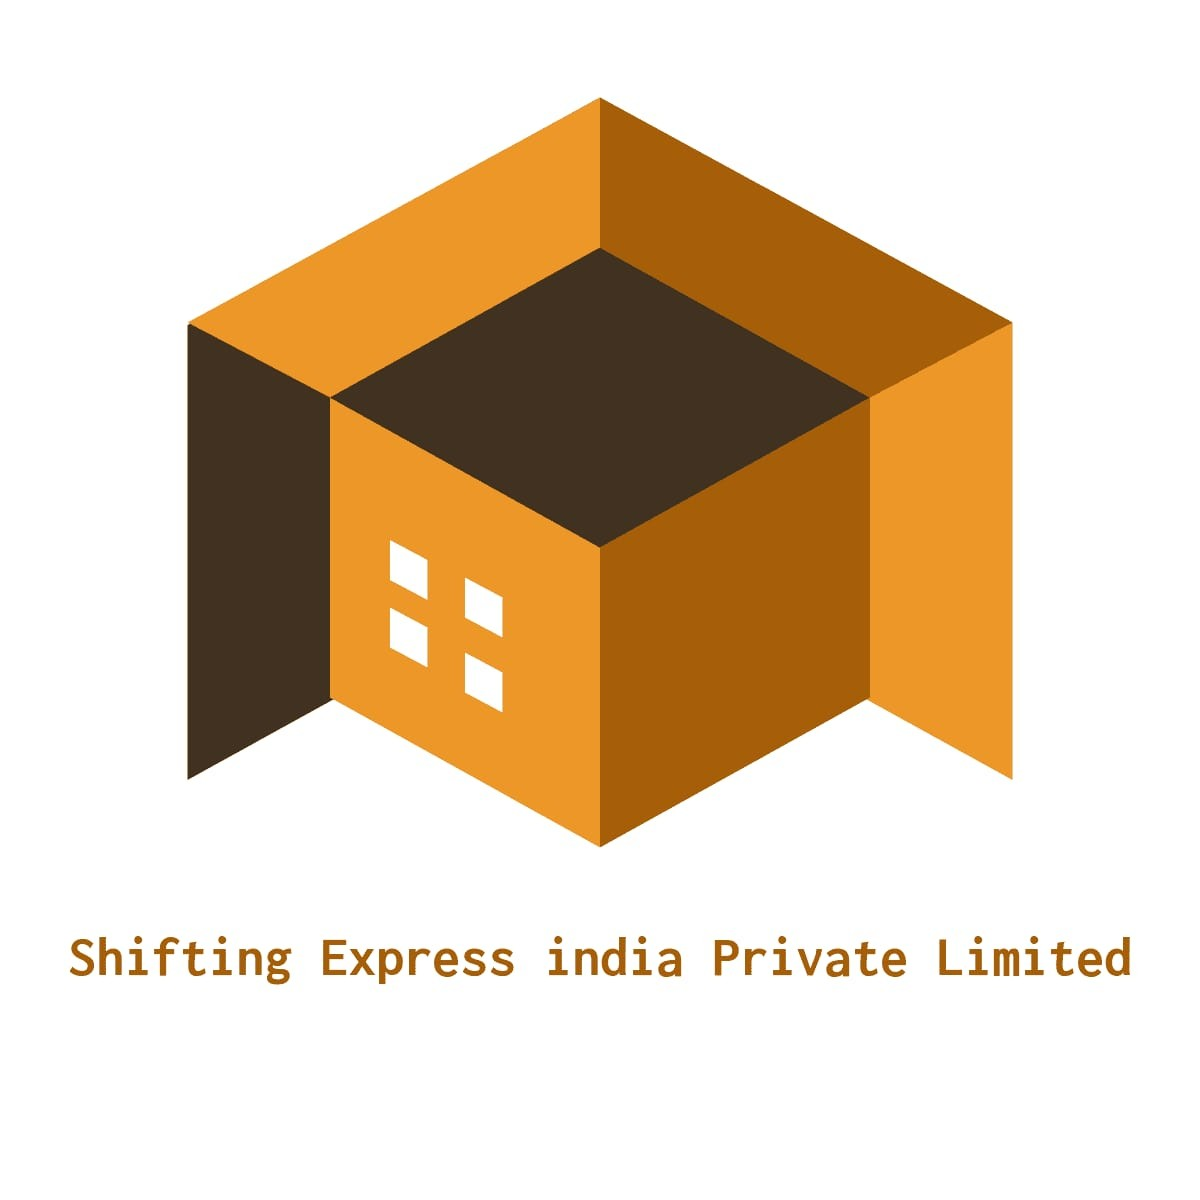 Shifting Express India Private Limited